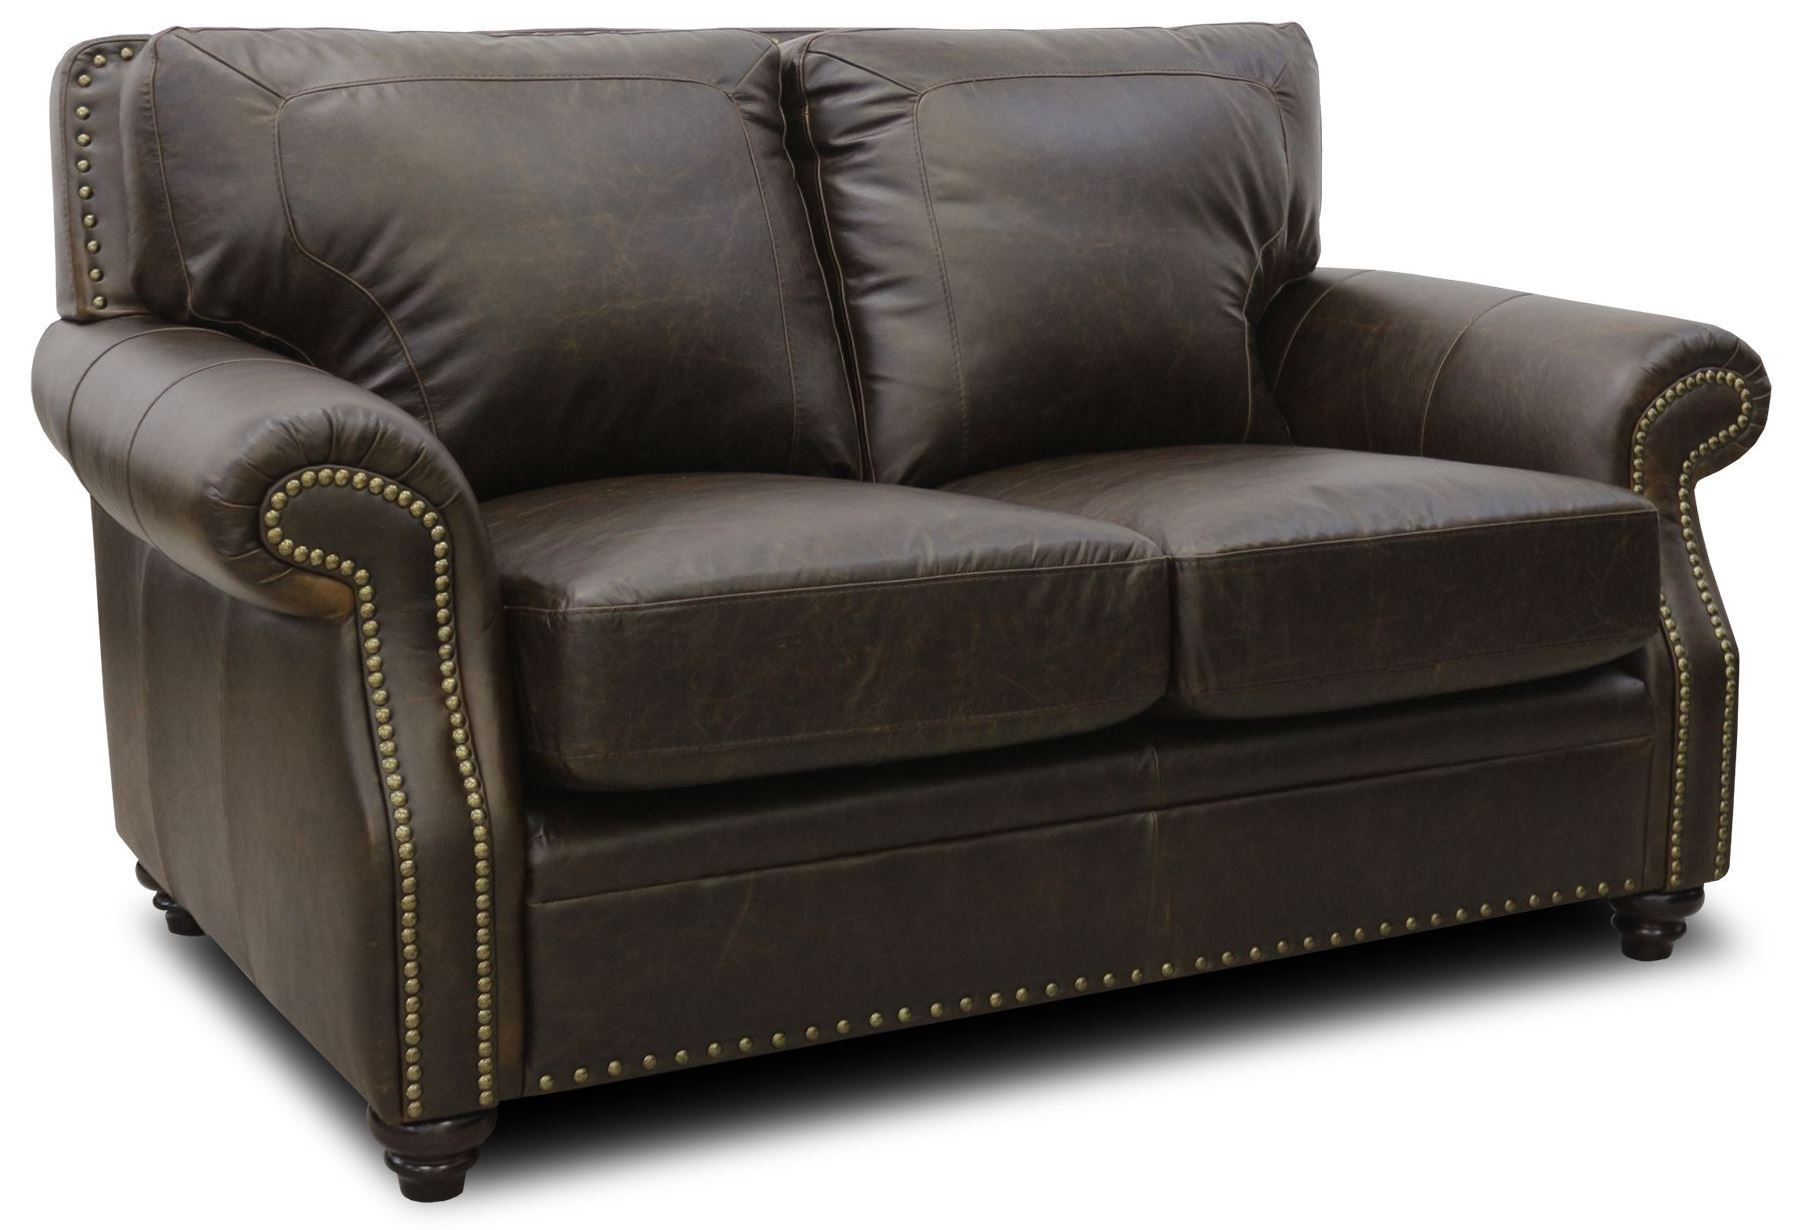 Mason Italian Leather Loveseat From Luke Leather Coleman Furniture